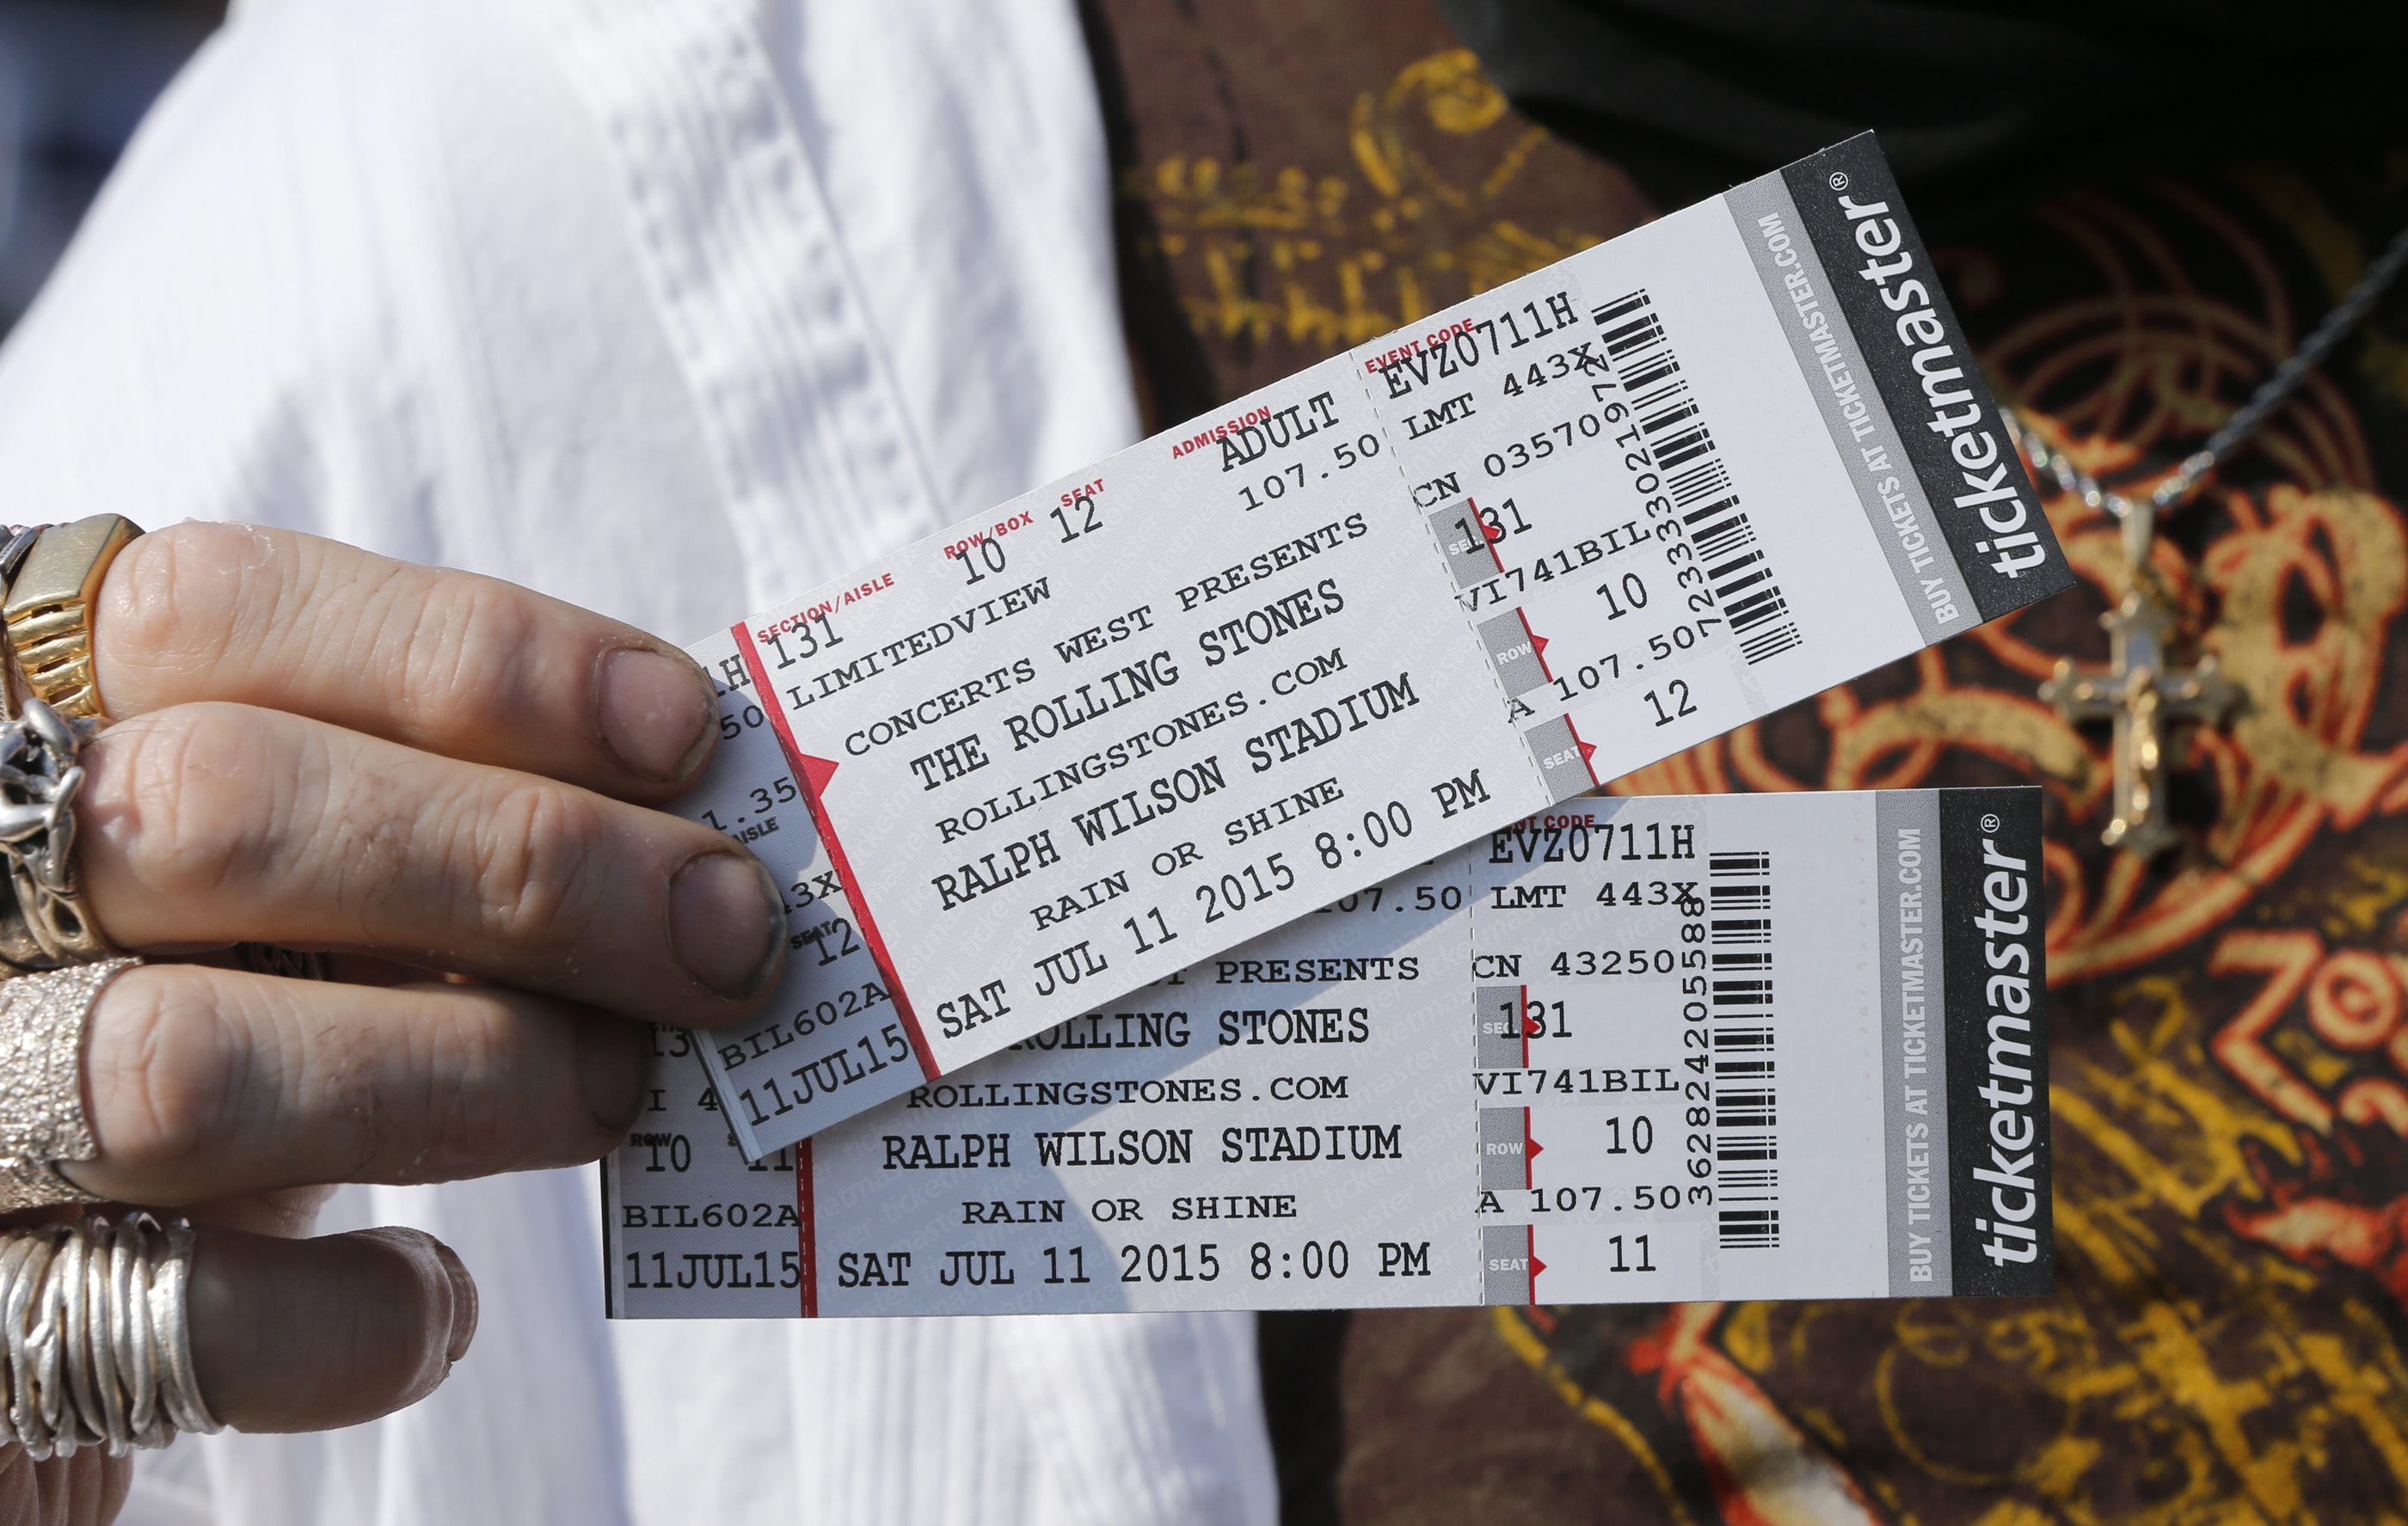 Plaintiffs in the recent Ticketmaster lawsuit were not left satisfied as the vouchers they received were not easily redeemed. (News file photo)